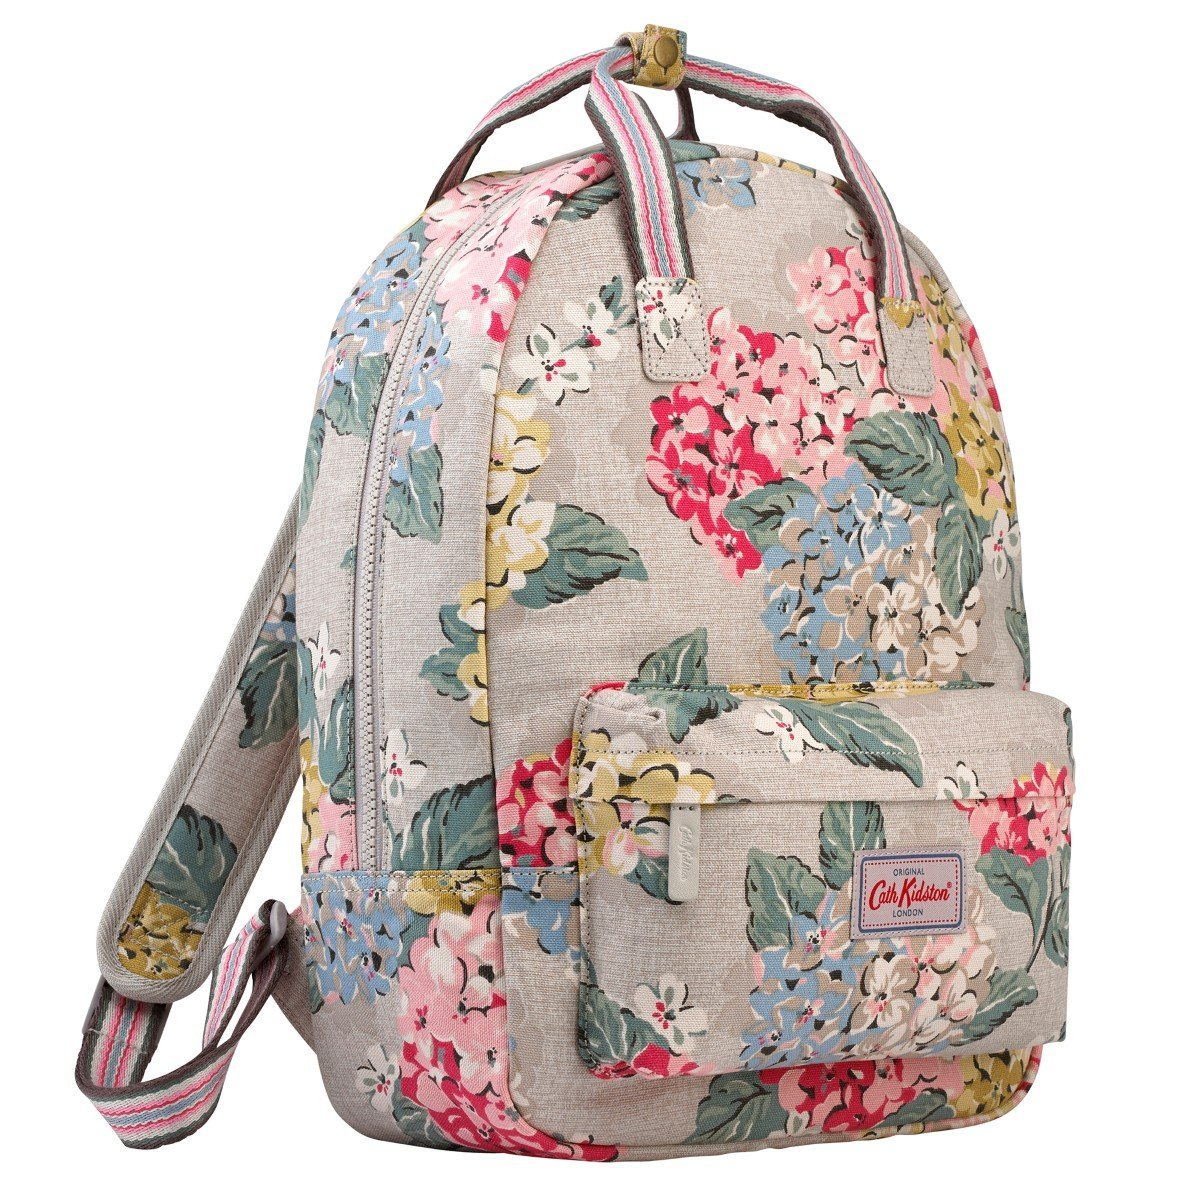 6c9d180be352c Buy Cath Kidston Small Cotton Backpack Rucksack Hydrangea Colour Oat ...